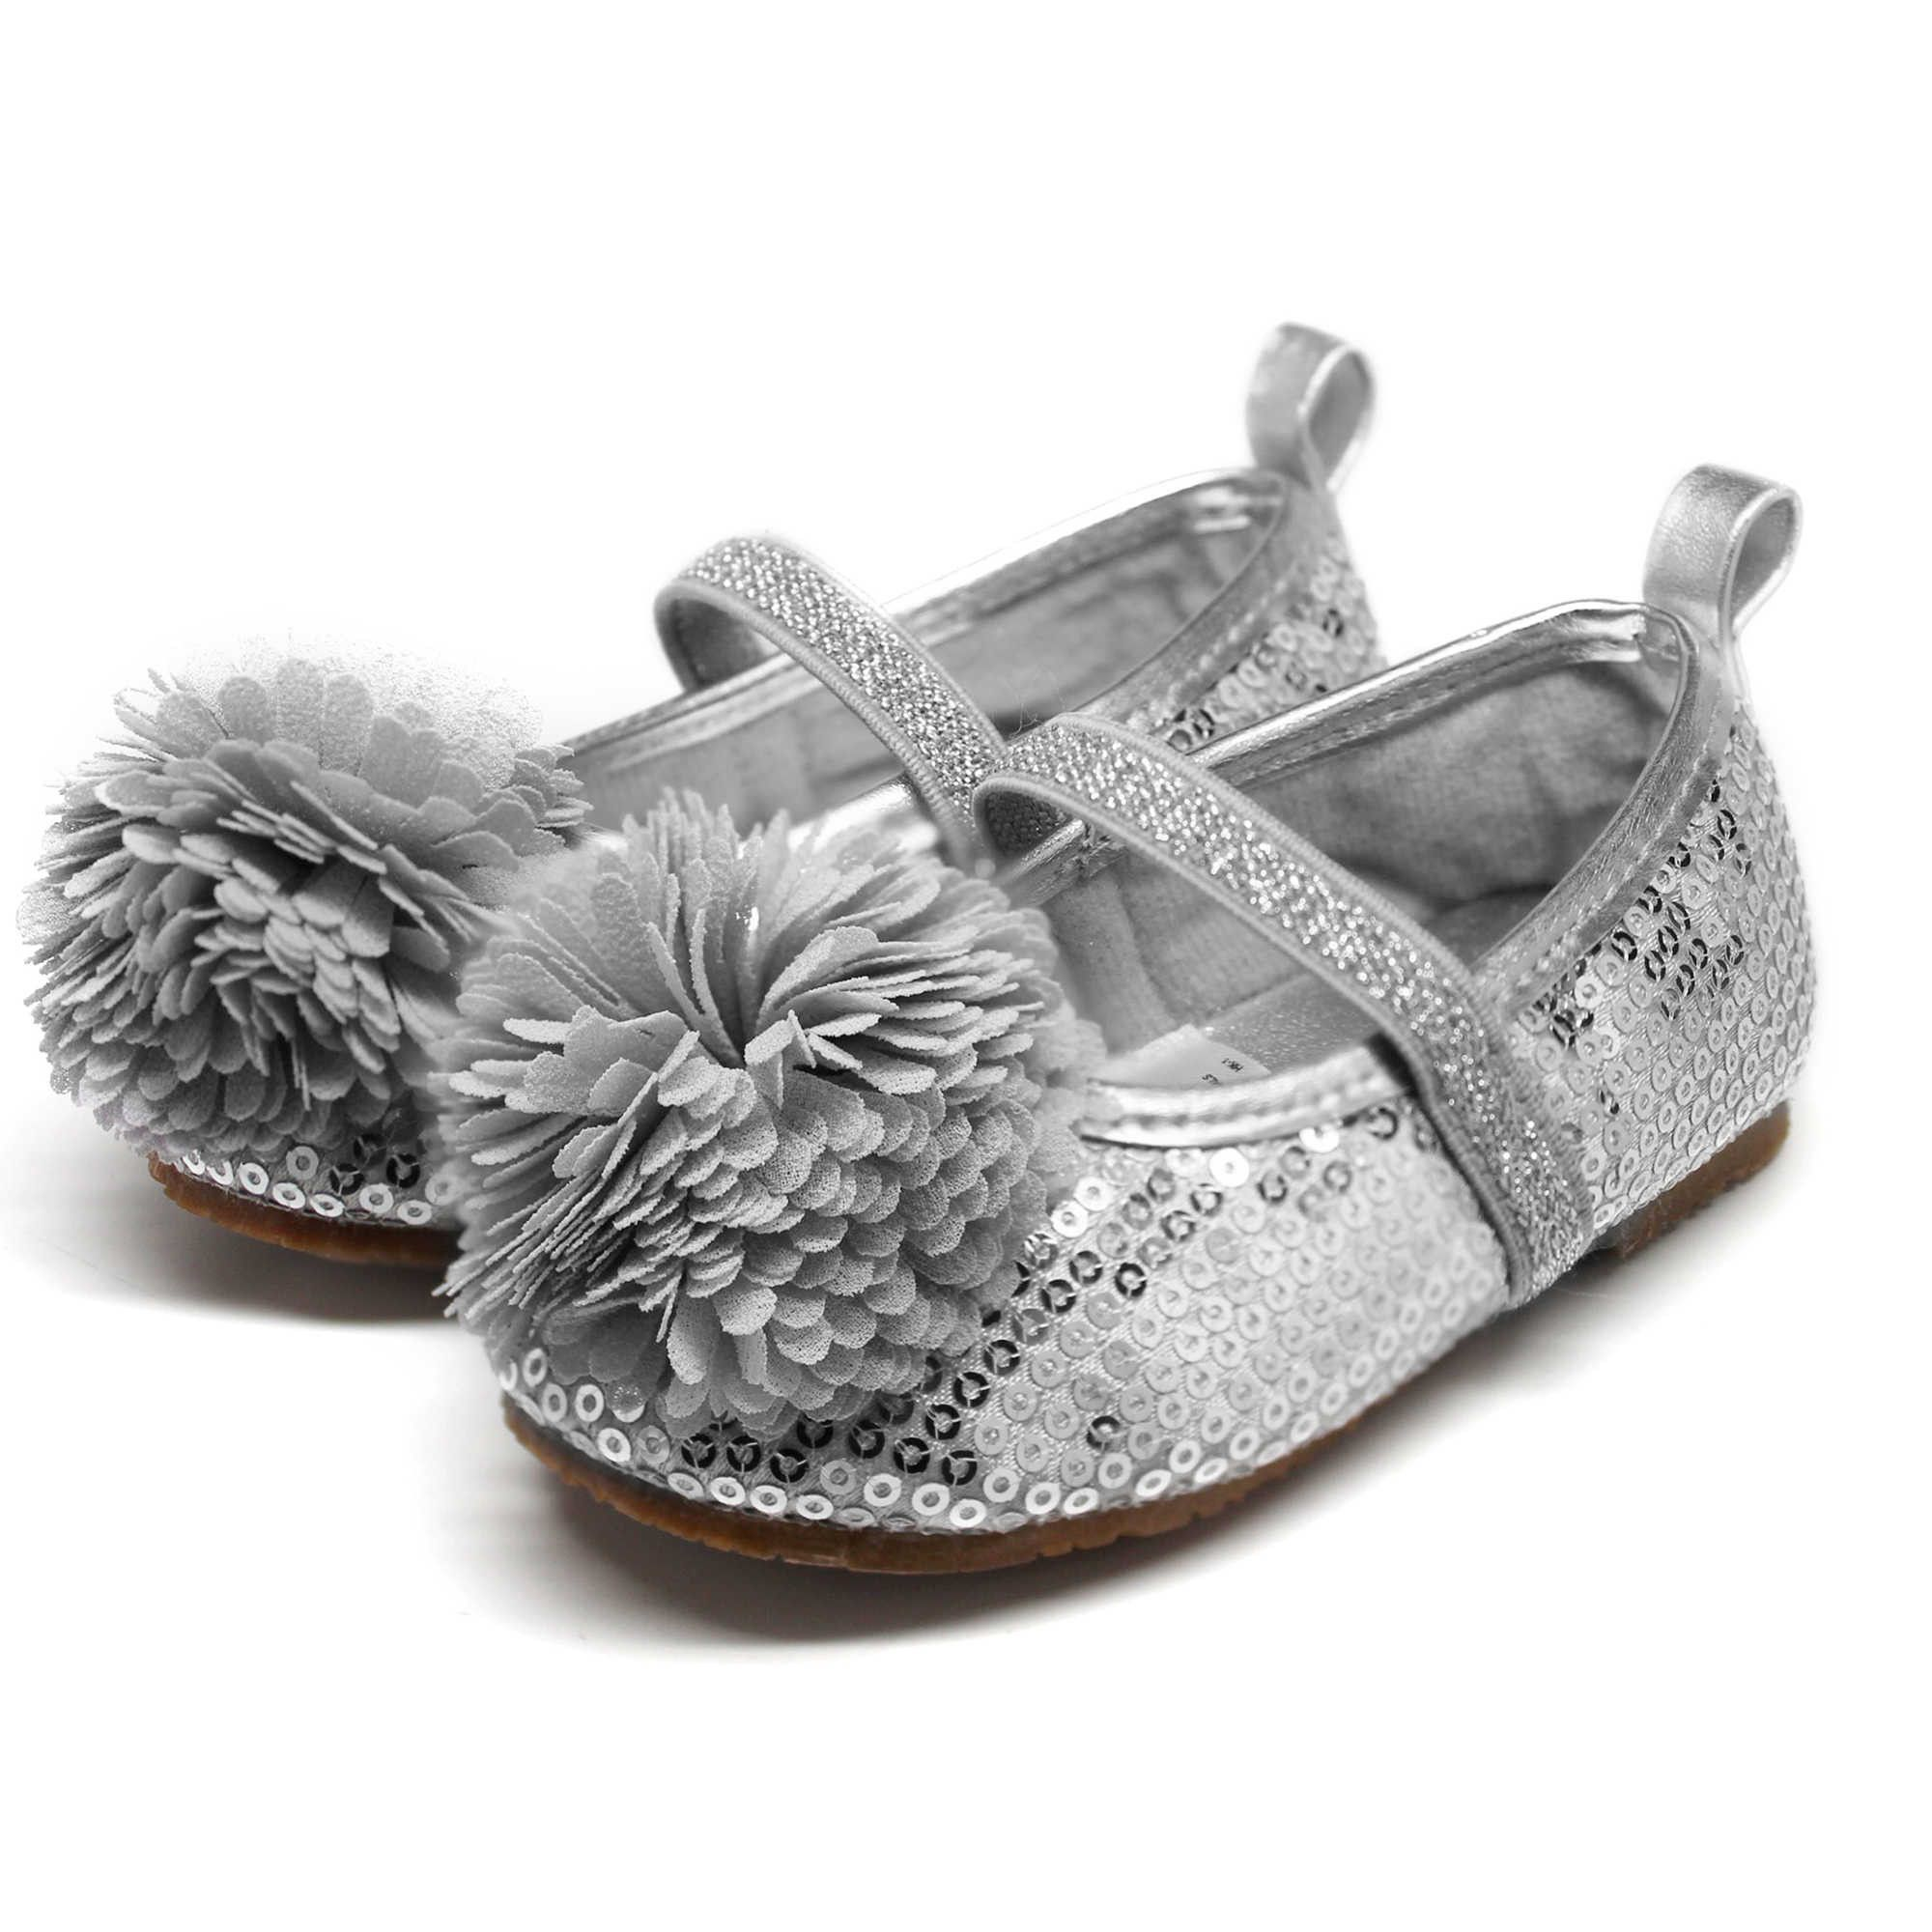 Stepping Stones Pom Pom Shoe in Silver